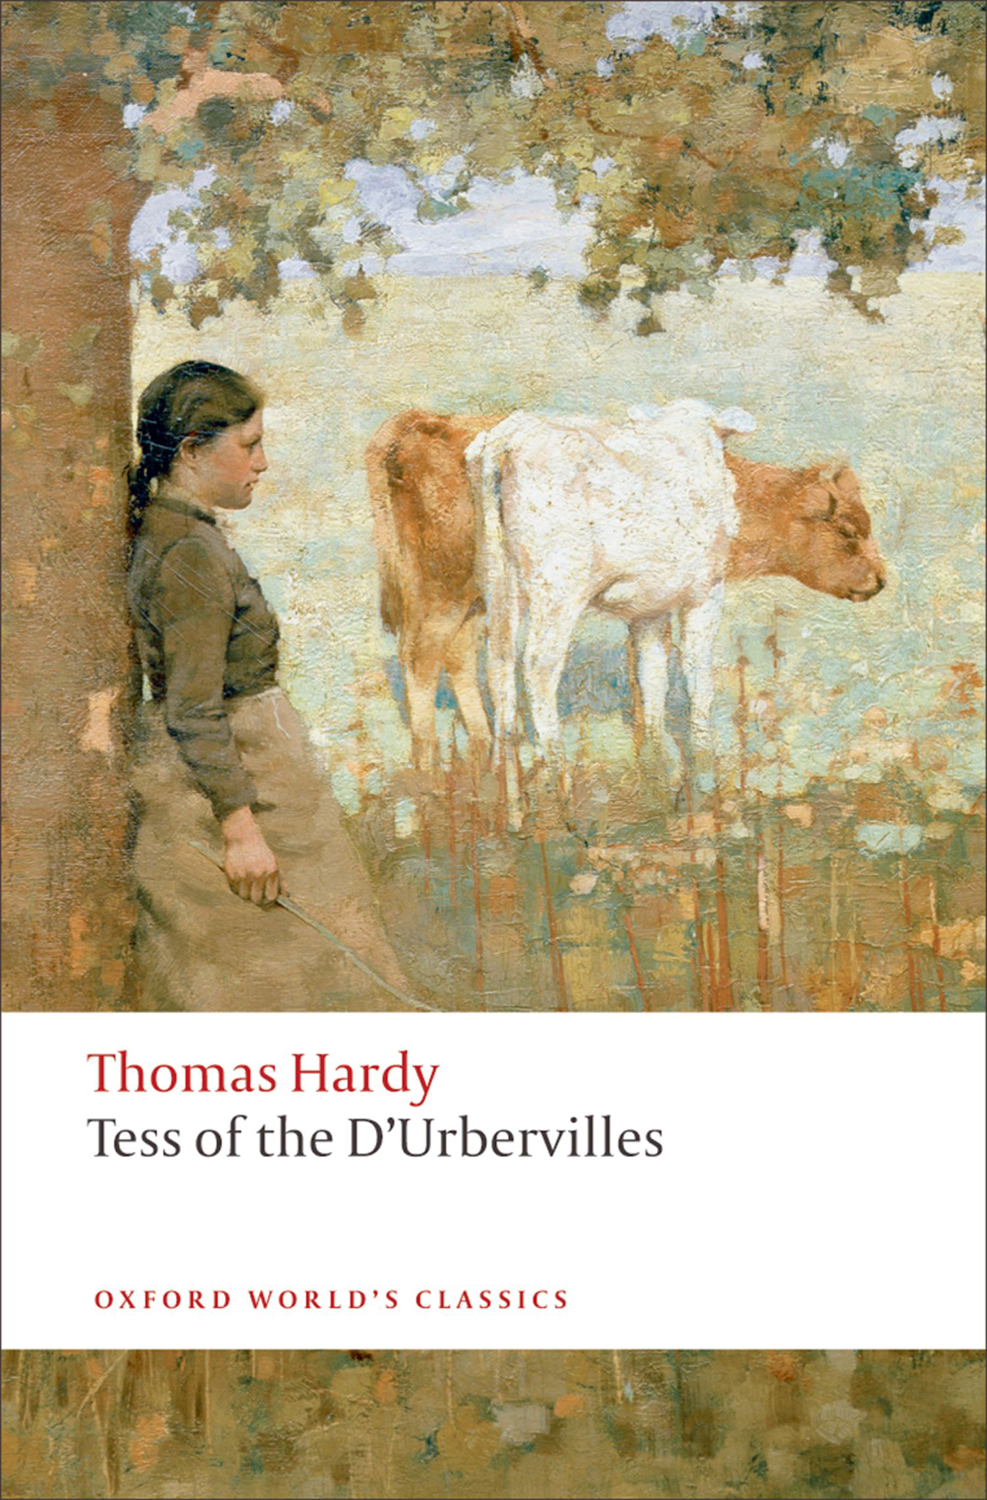 an examination of the victim tess durbeyfield in the book tess of the durbervilles Thomas hardy, tess of the d'urbervilles protagonist is in fact tess durbeyfield 2 returns to find tess sleeping 3 is tess a victim of rape.